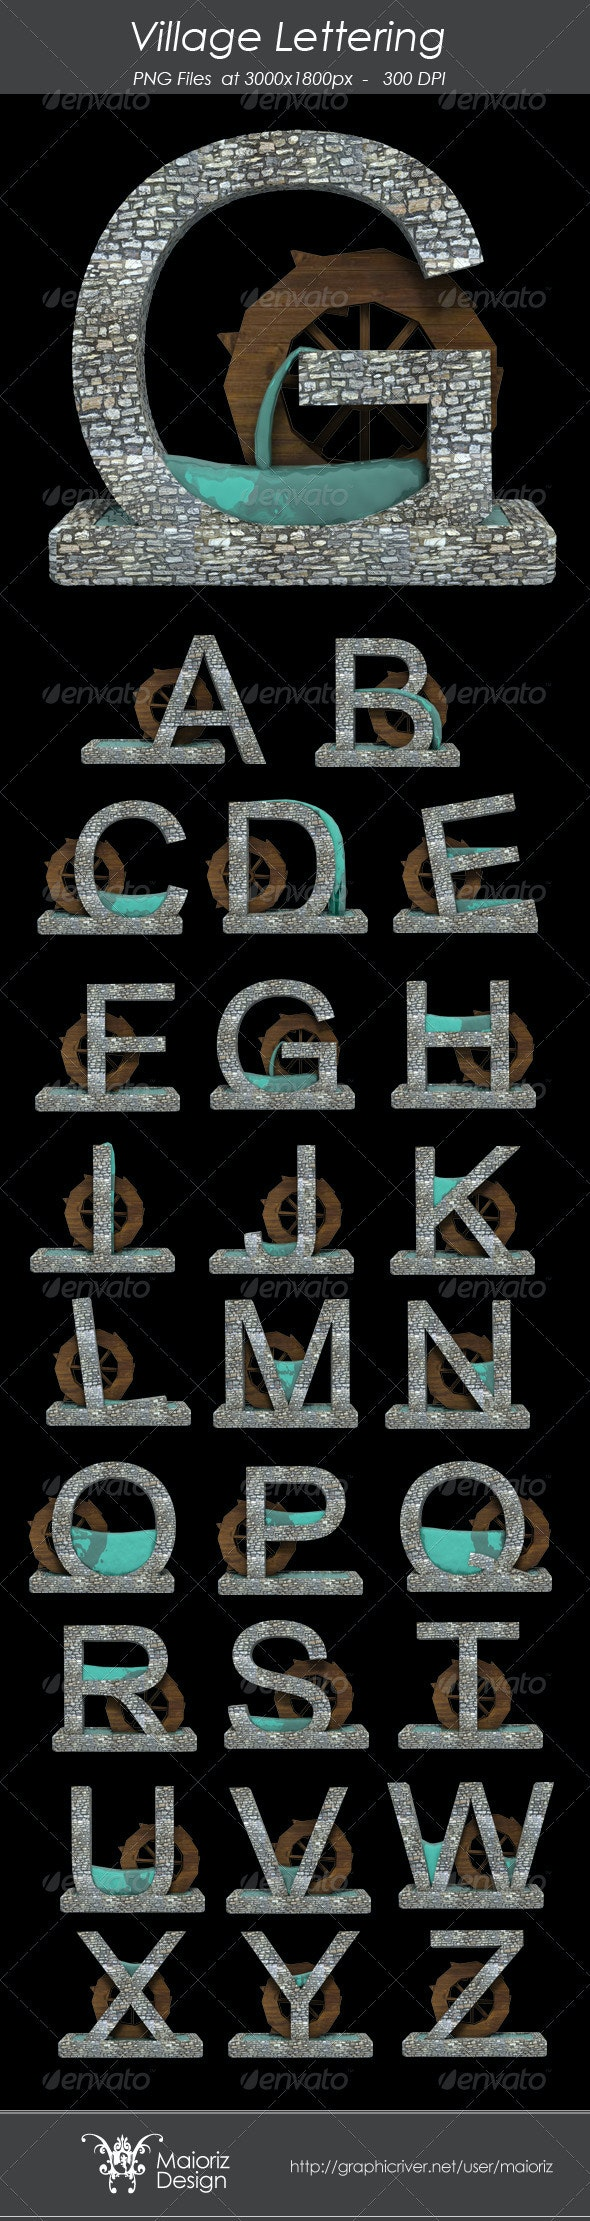 Village Lettering - Text 3D Renders